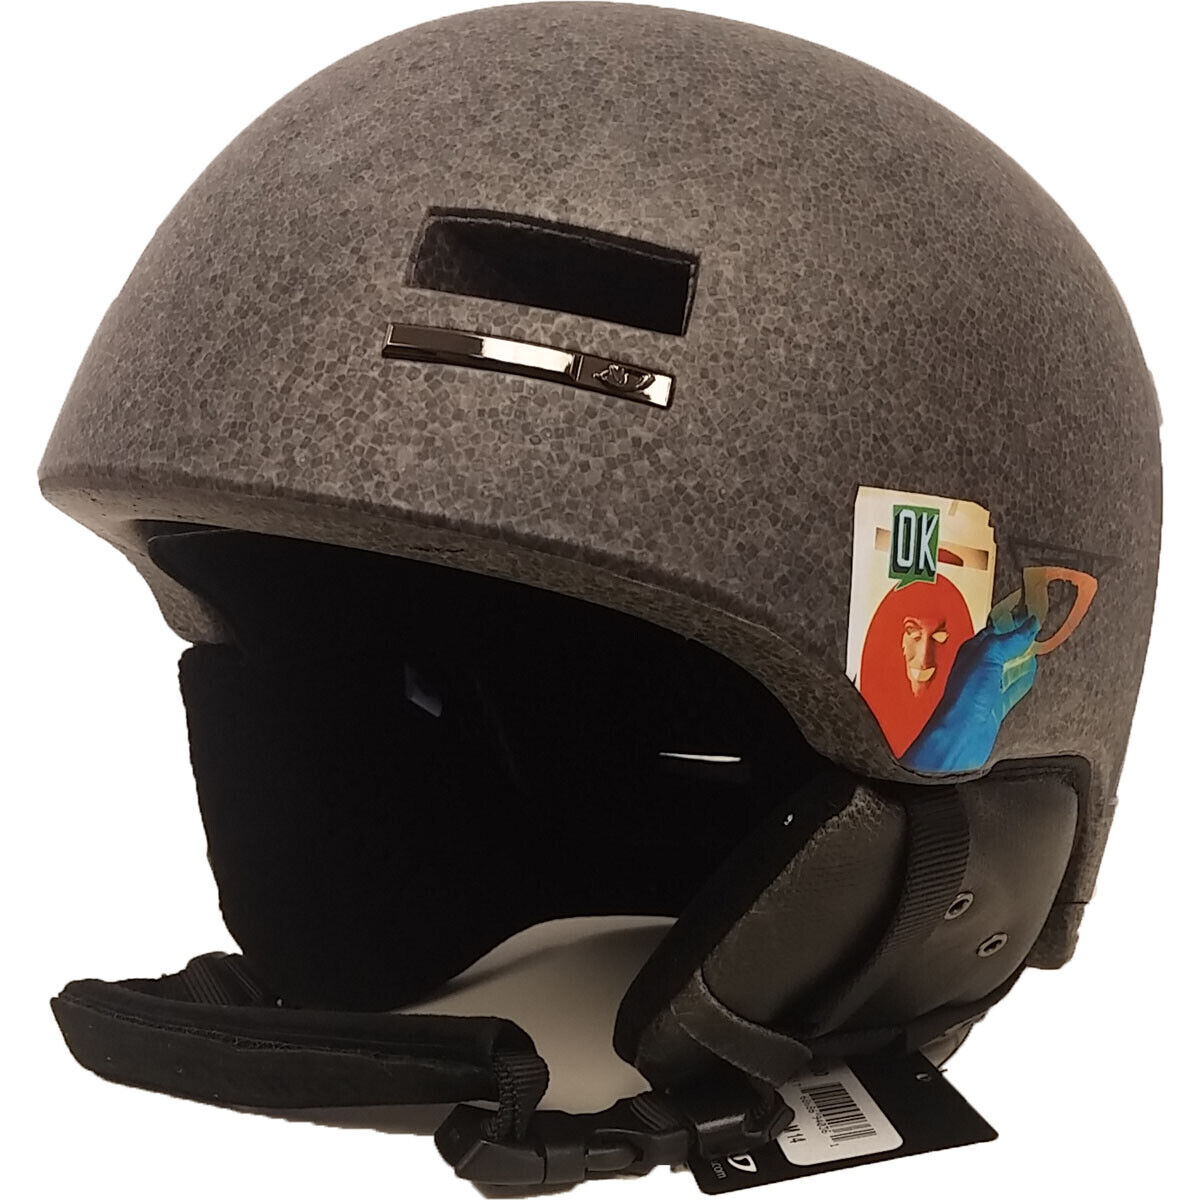 Giro Shiv 2 Skiing Snow Helmet Matte Clear Boardwalk Adult Medium M 55.5 59 cm